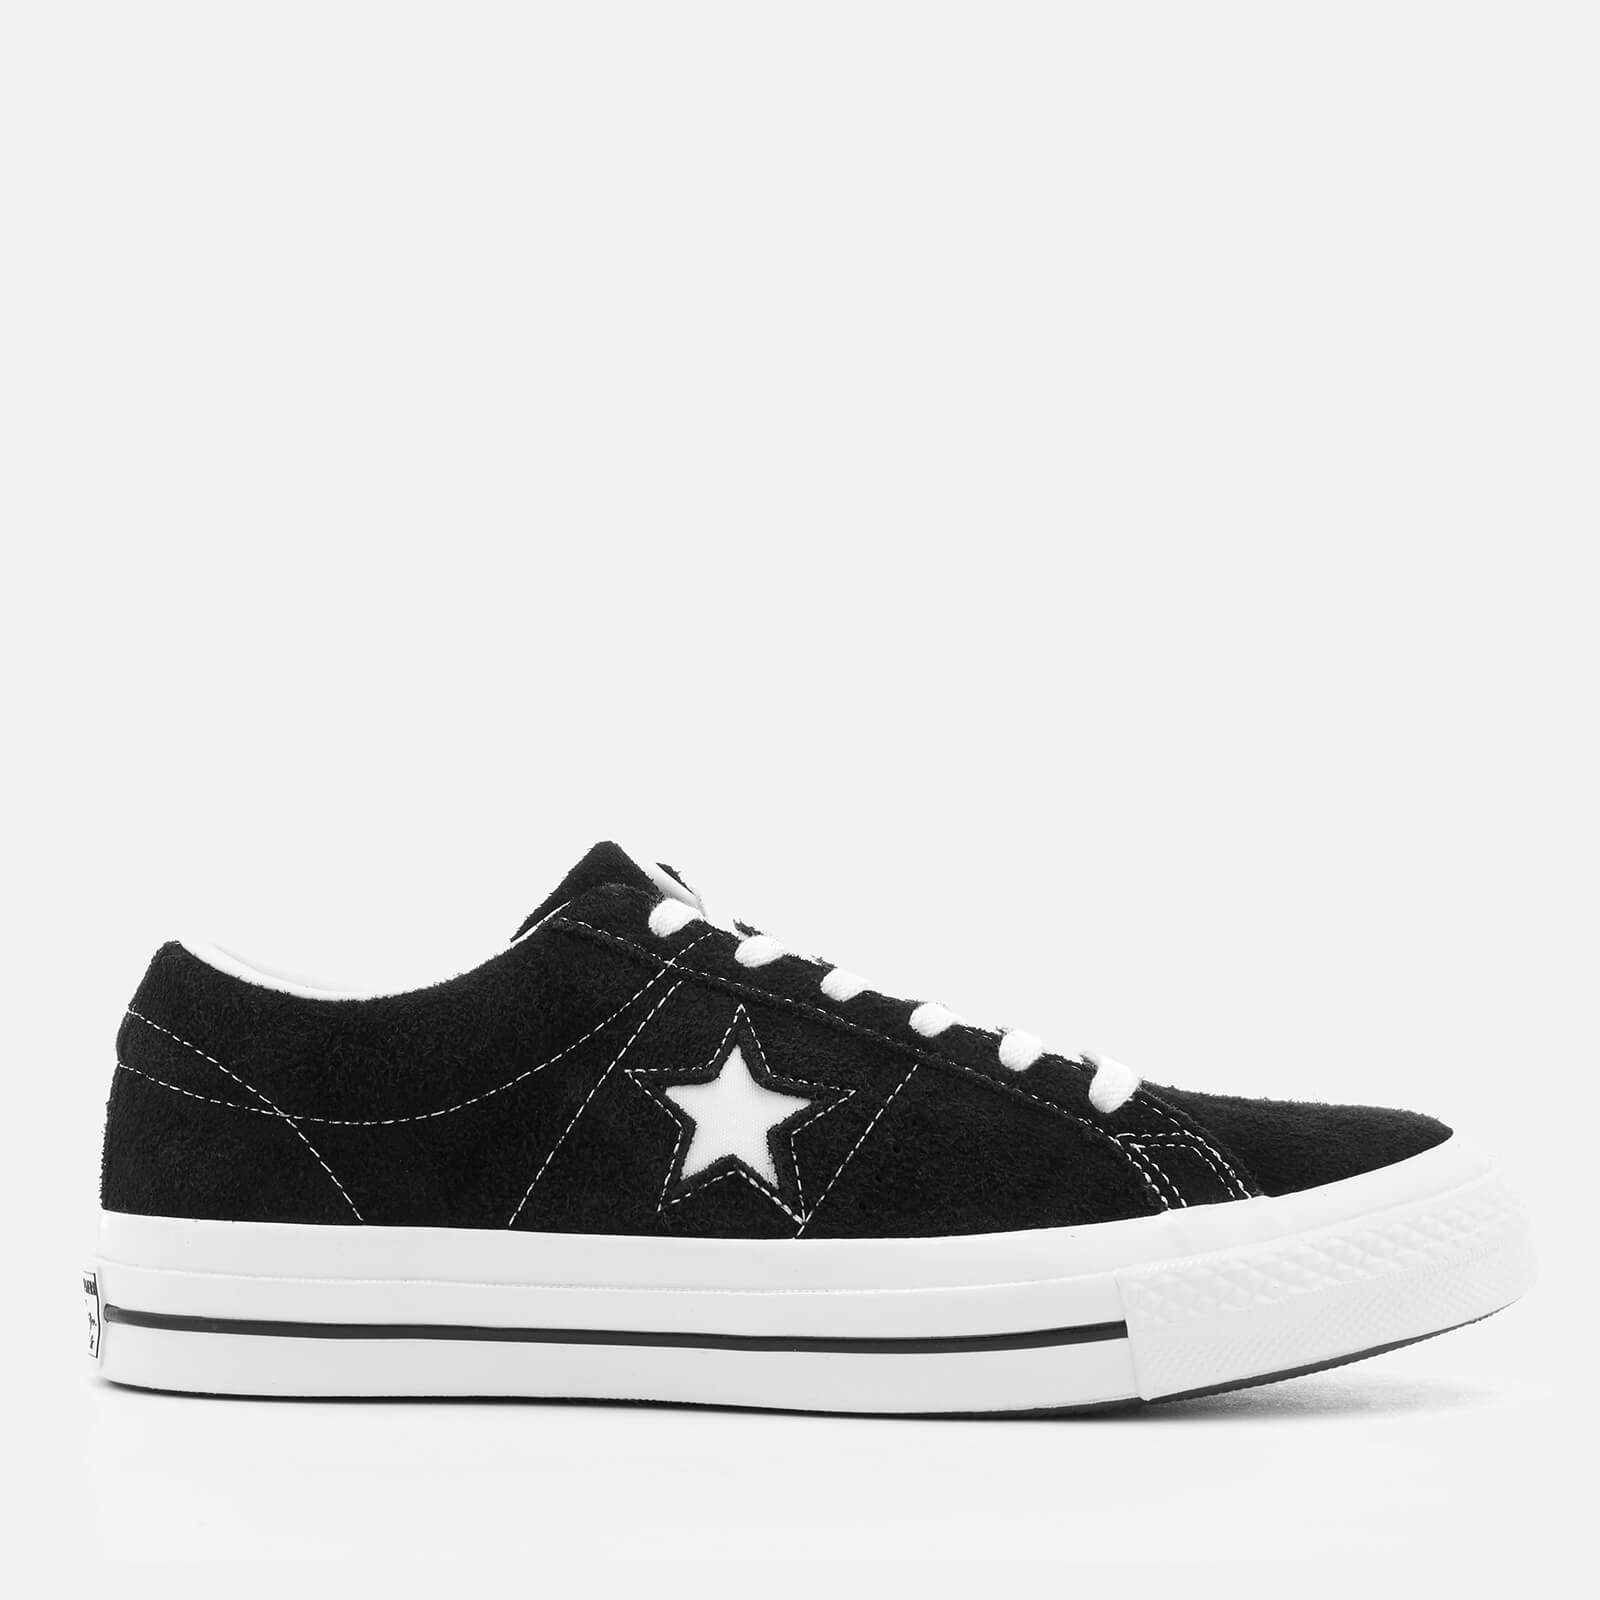 75a475eccfeed3 Converse One Star Ox Trainers - Black White